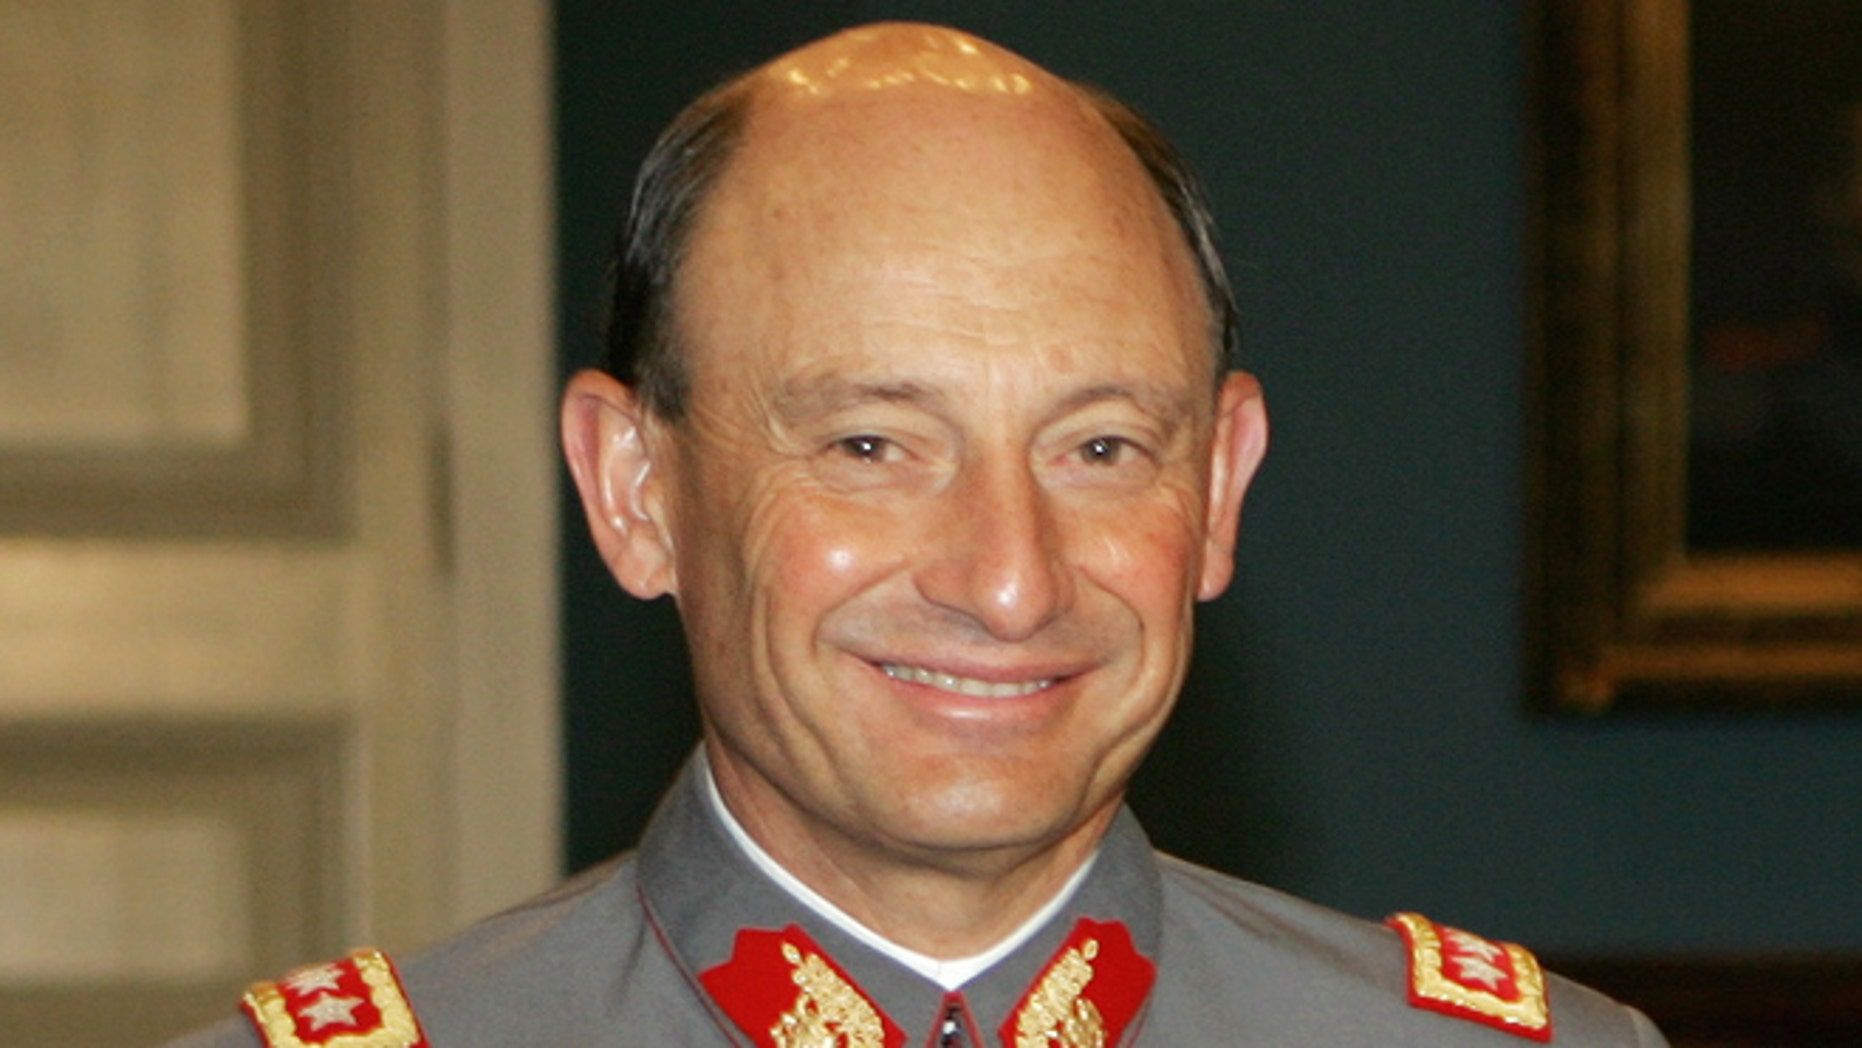 FILE - This Nov. 28, 2005 file photo, shows Chile's outgoing Army Chief Gen. Juan Emilio Cheyre at the government palace La Moneda, in Santiago, Chile. The former army chief acknowledged on Tuesday, Aug. 20, 2013, that he handed over to nuns the child of two left-wing activists killed after the 1973 military coup. Cheyre, who now heads Chile's electoral service, told the newspaper El Mercurio that he gave 2-year-old Ernesto Lejderman to a convent. In his first time speaking publicly about the case, he said that he was just following orders and that his conscience is clean. (AP Photo/Santiago Llanquin, File)